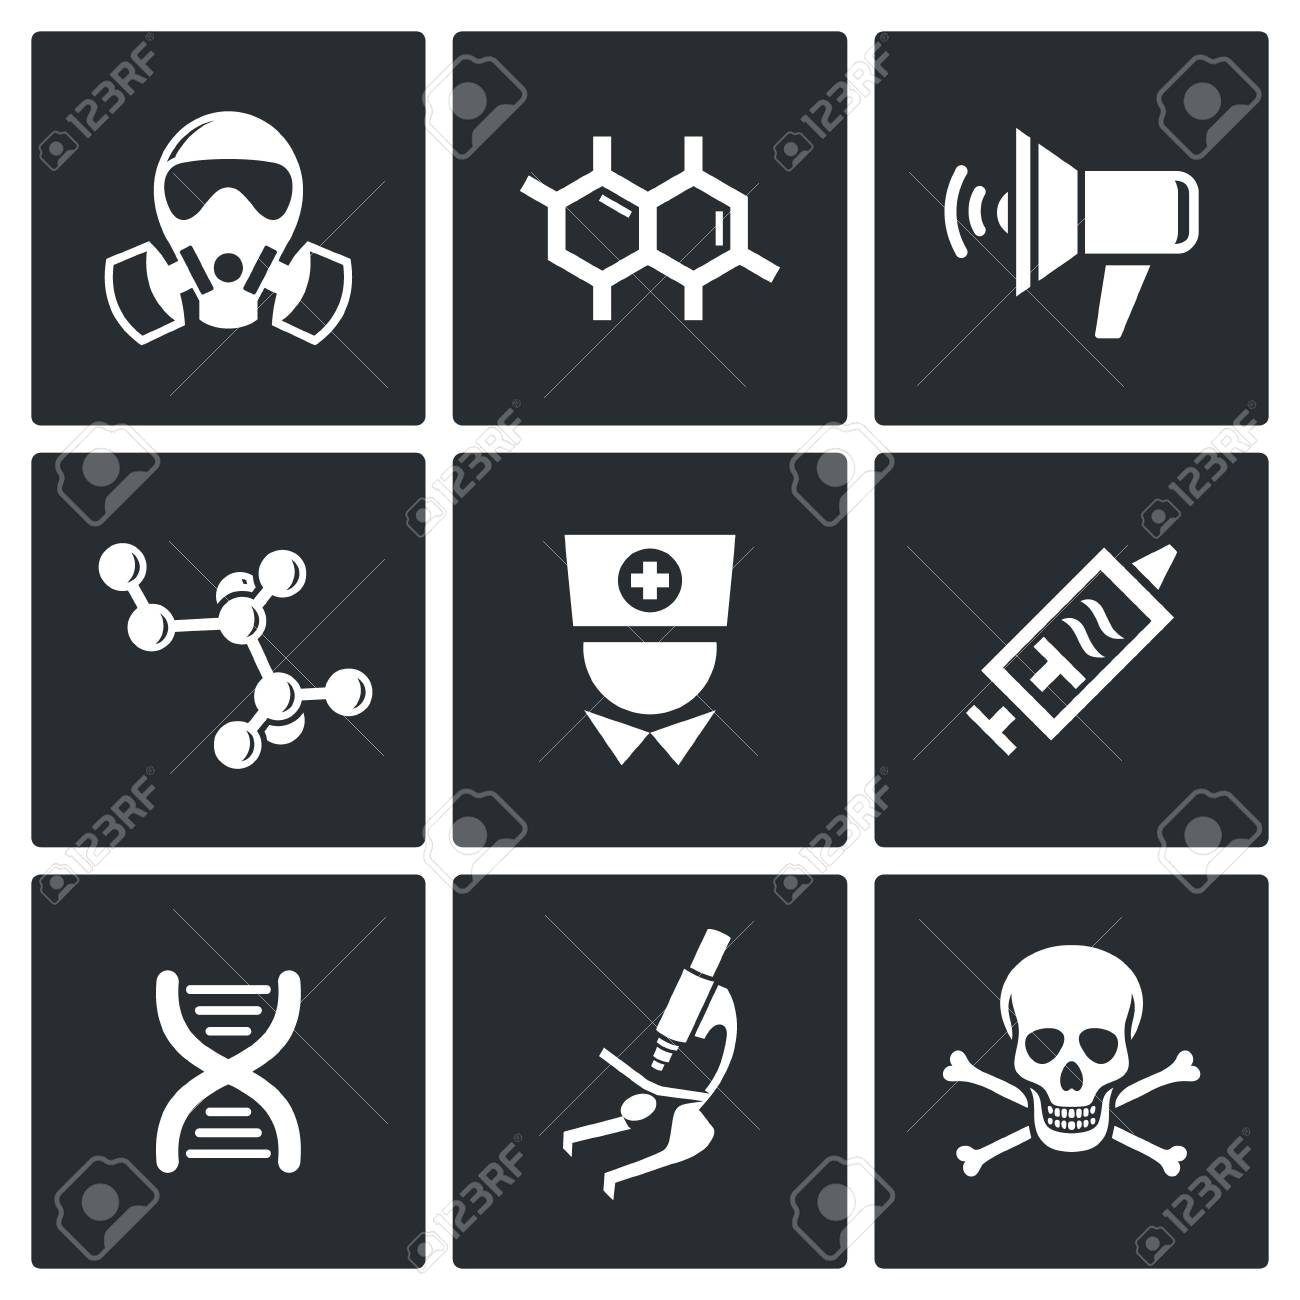 Ebola Icon Collection On A Black Background Royalty Cliparts 1300x1300